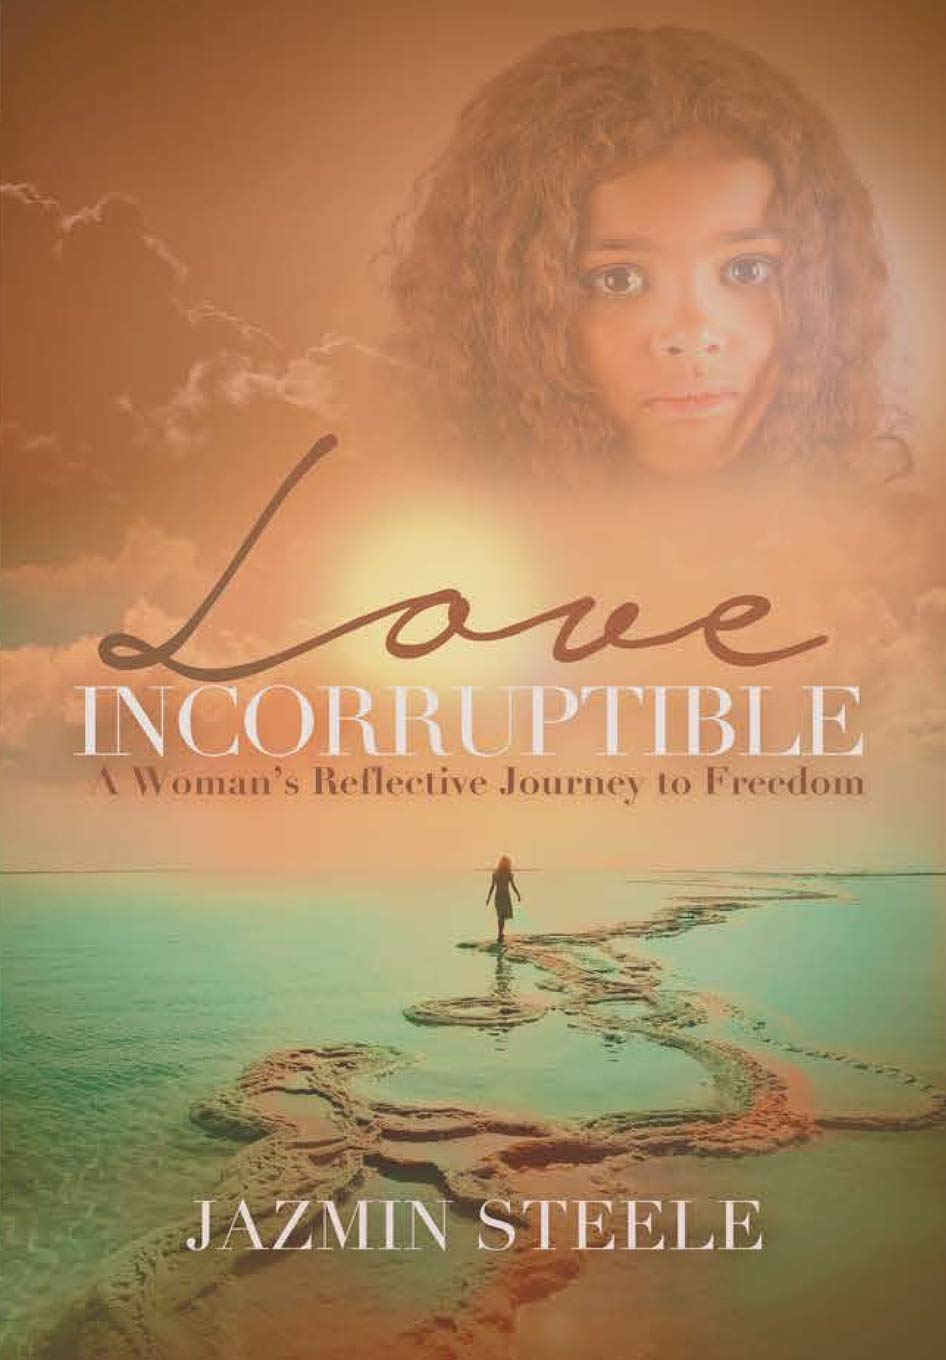 Download Love Incorruptible: A Woman's Reflective Journey to Freedom pdf